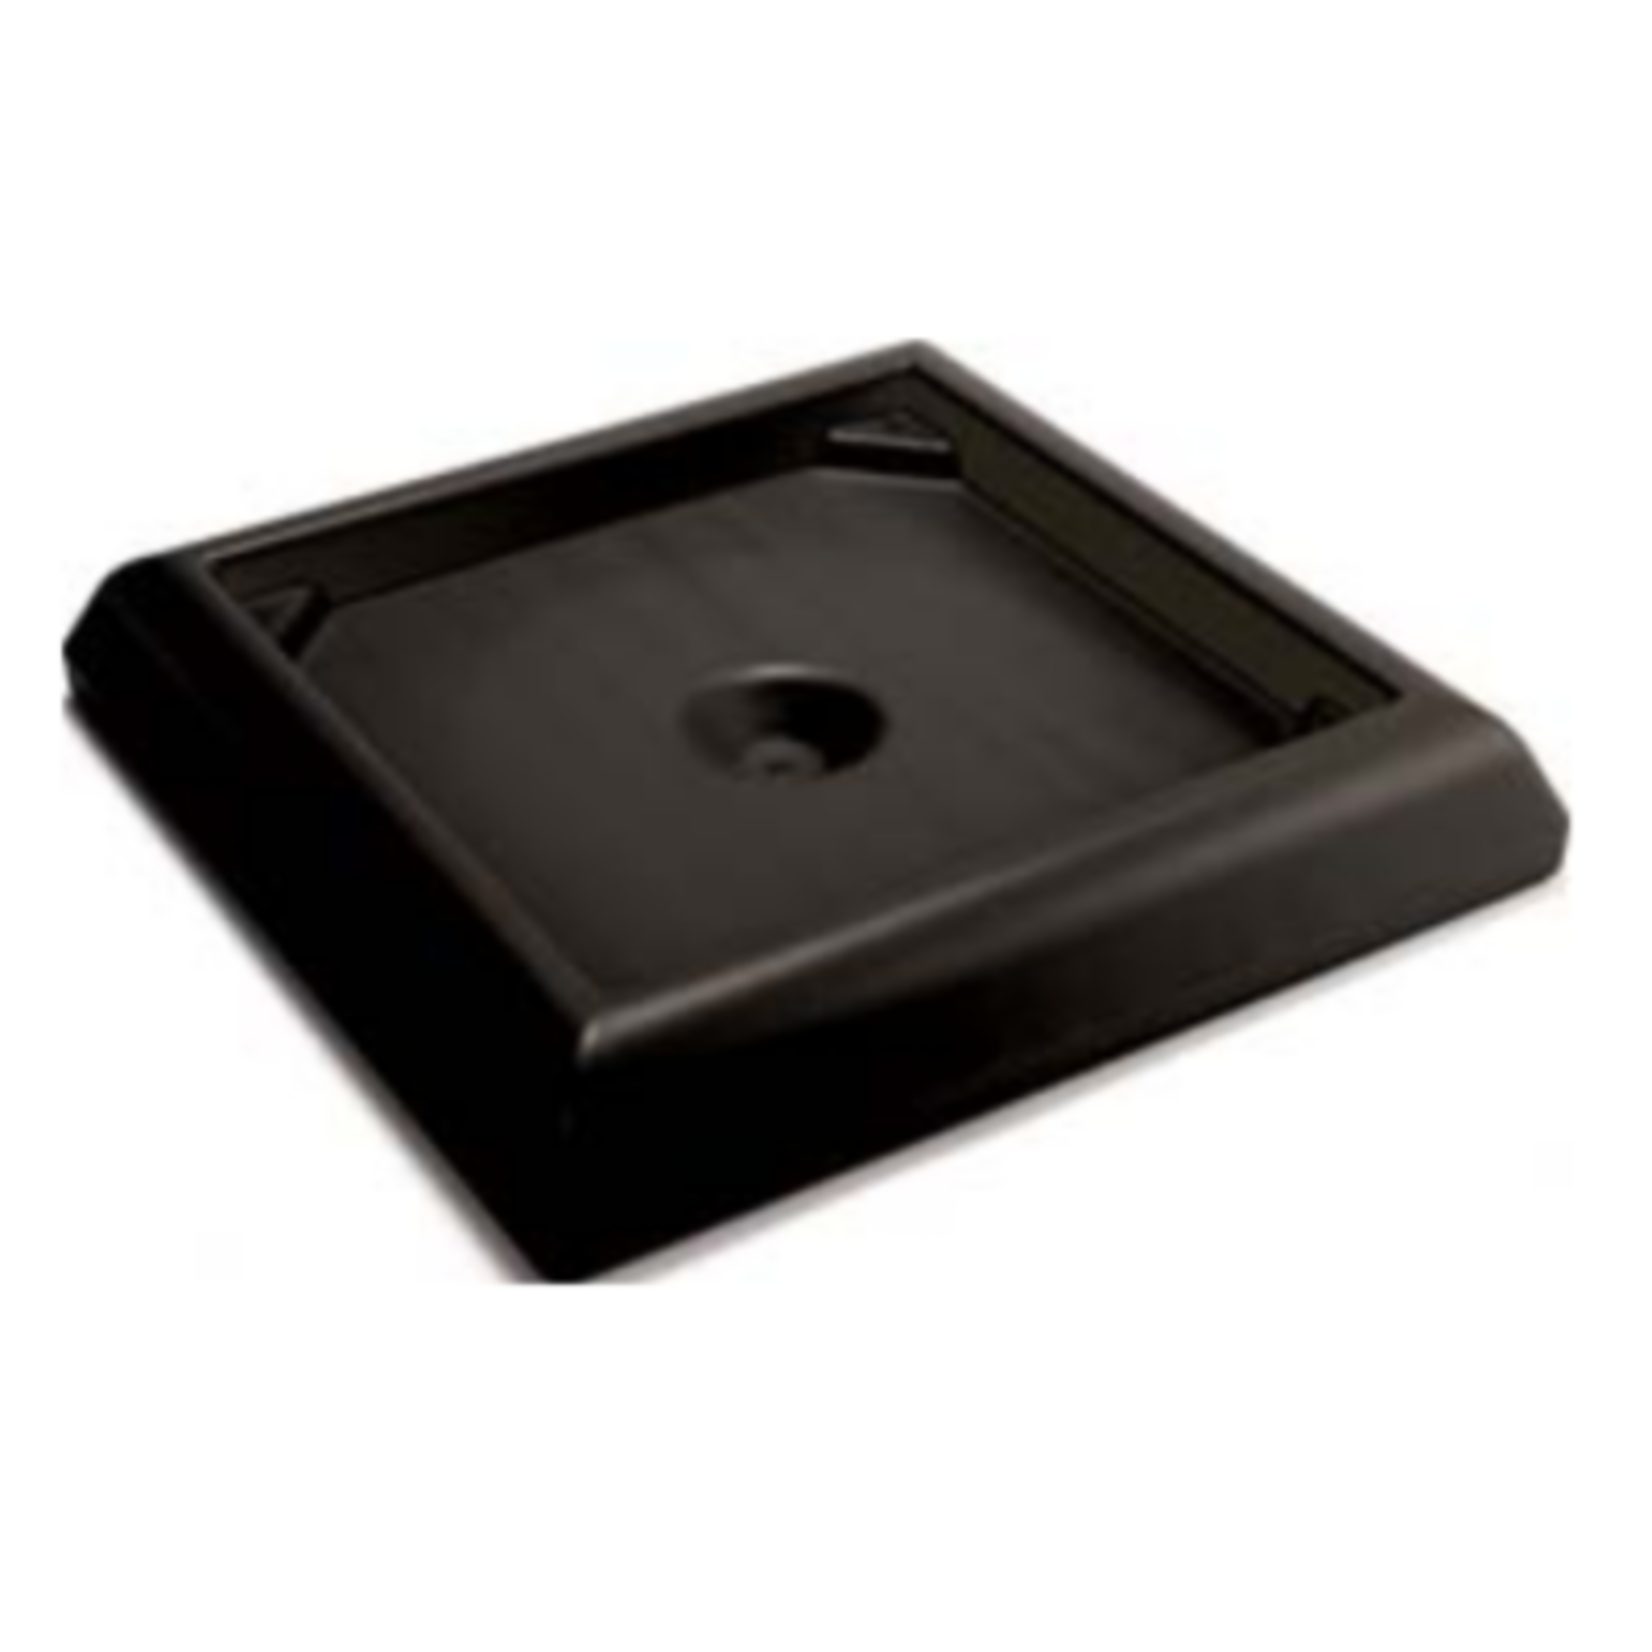 6922 Rubbermaid Weighted Base Accessory